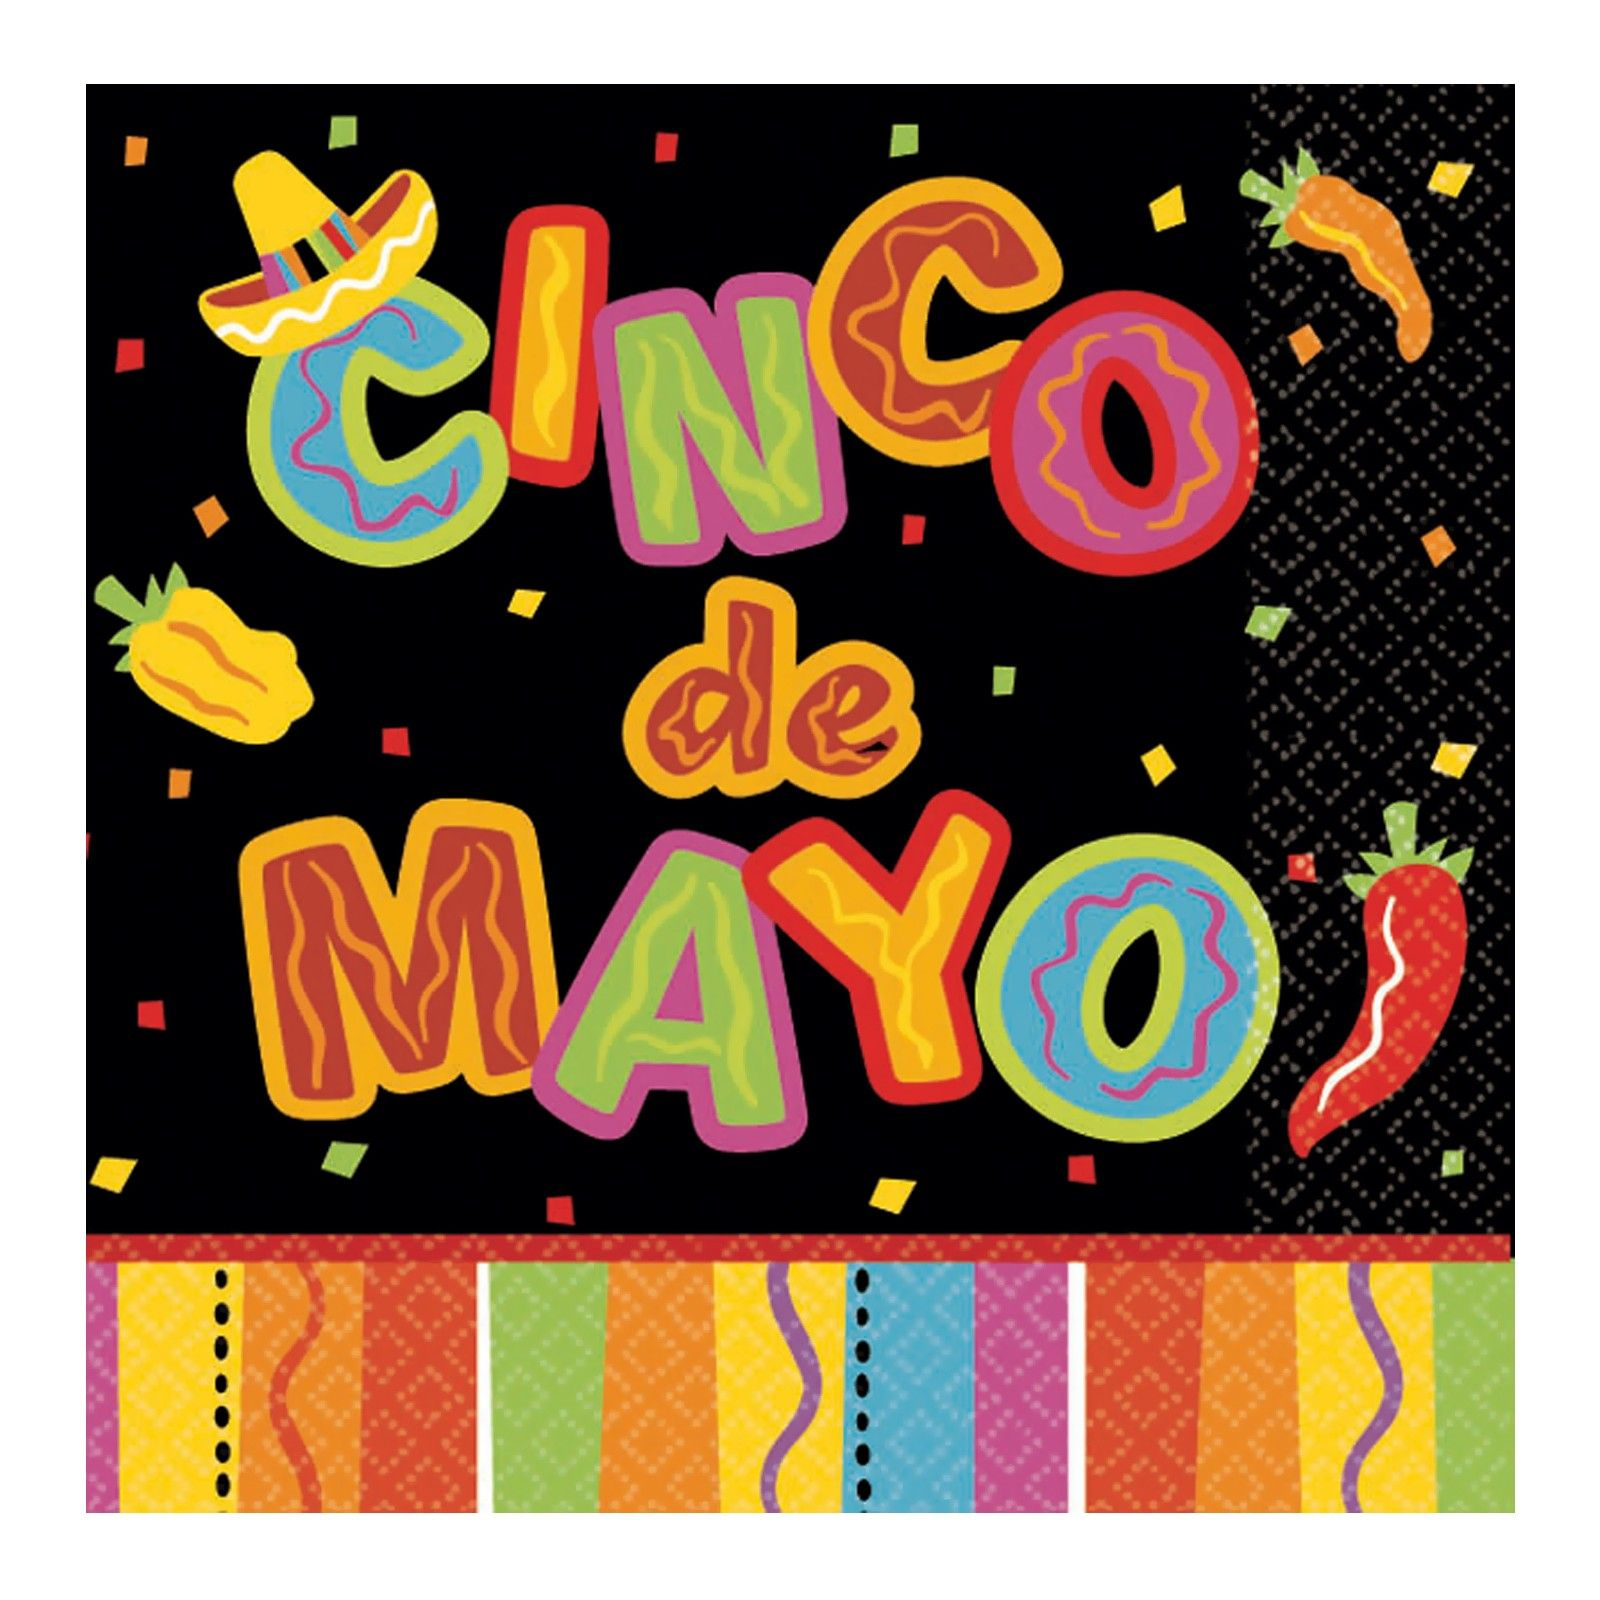 Recipes for monday5 may 2014 from allrecipes chaud et pic cinco de mayo sayings and quotes yahoo image search results kristyandbryce Gallery